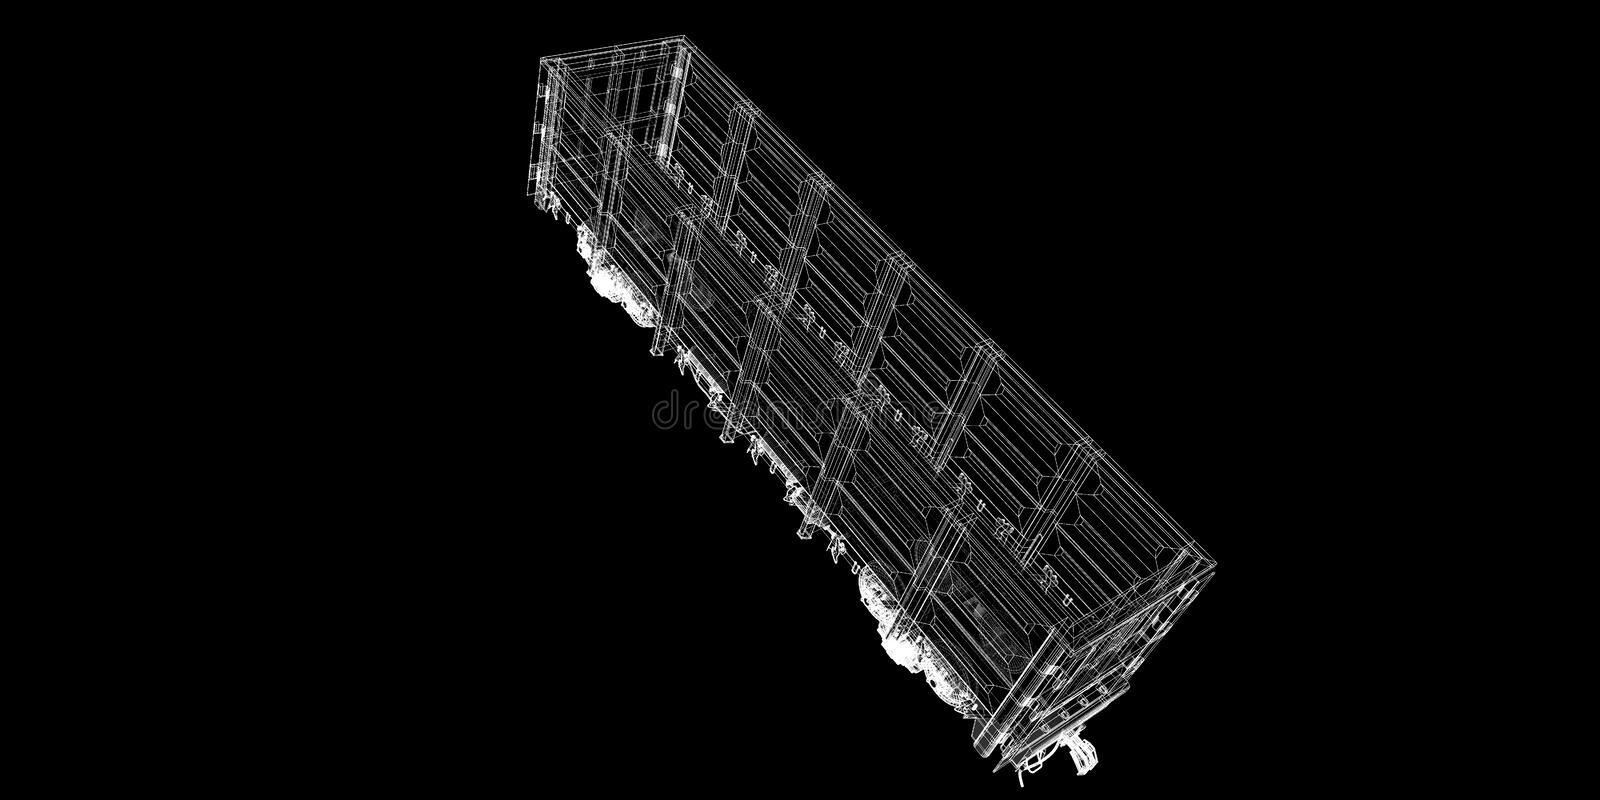 Boxcar. Railway carriagebody structure, wire model stock images